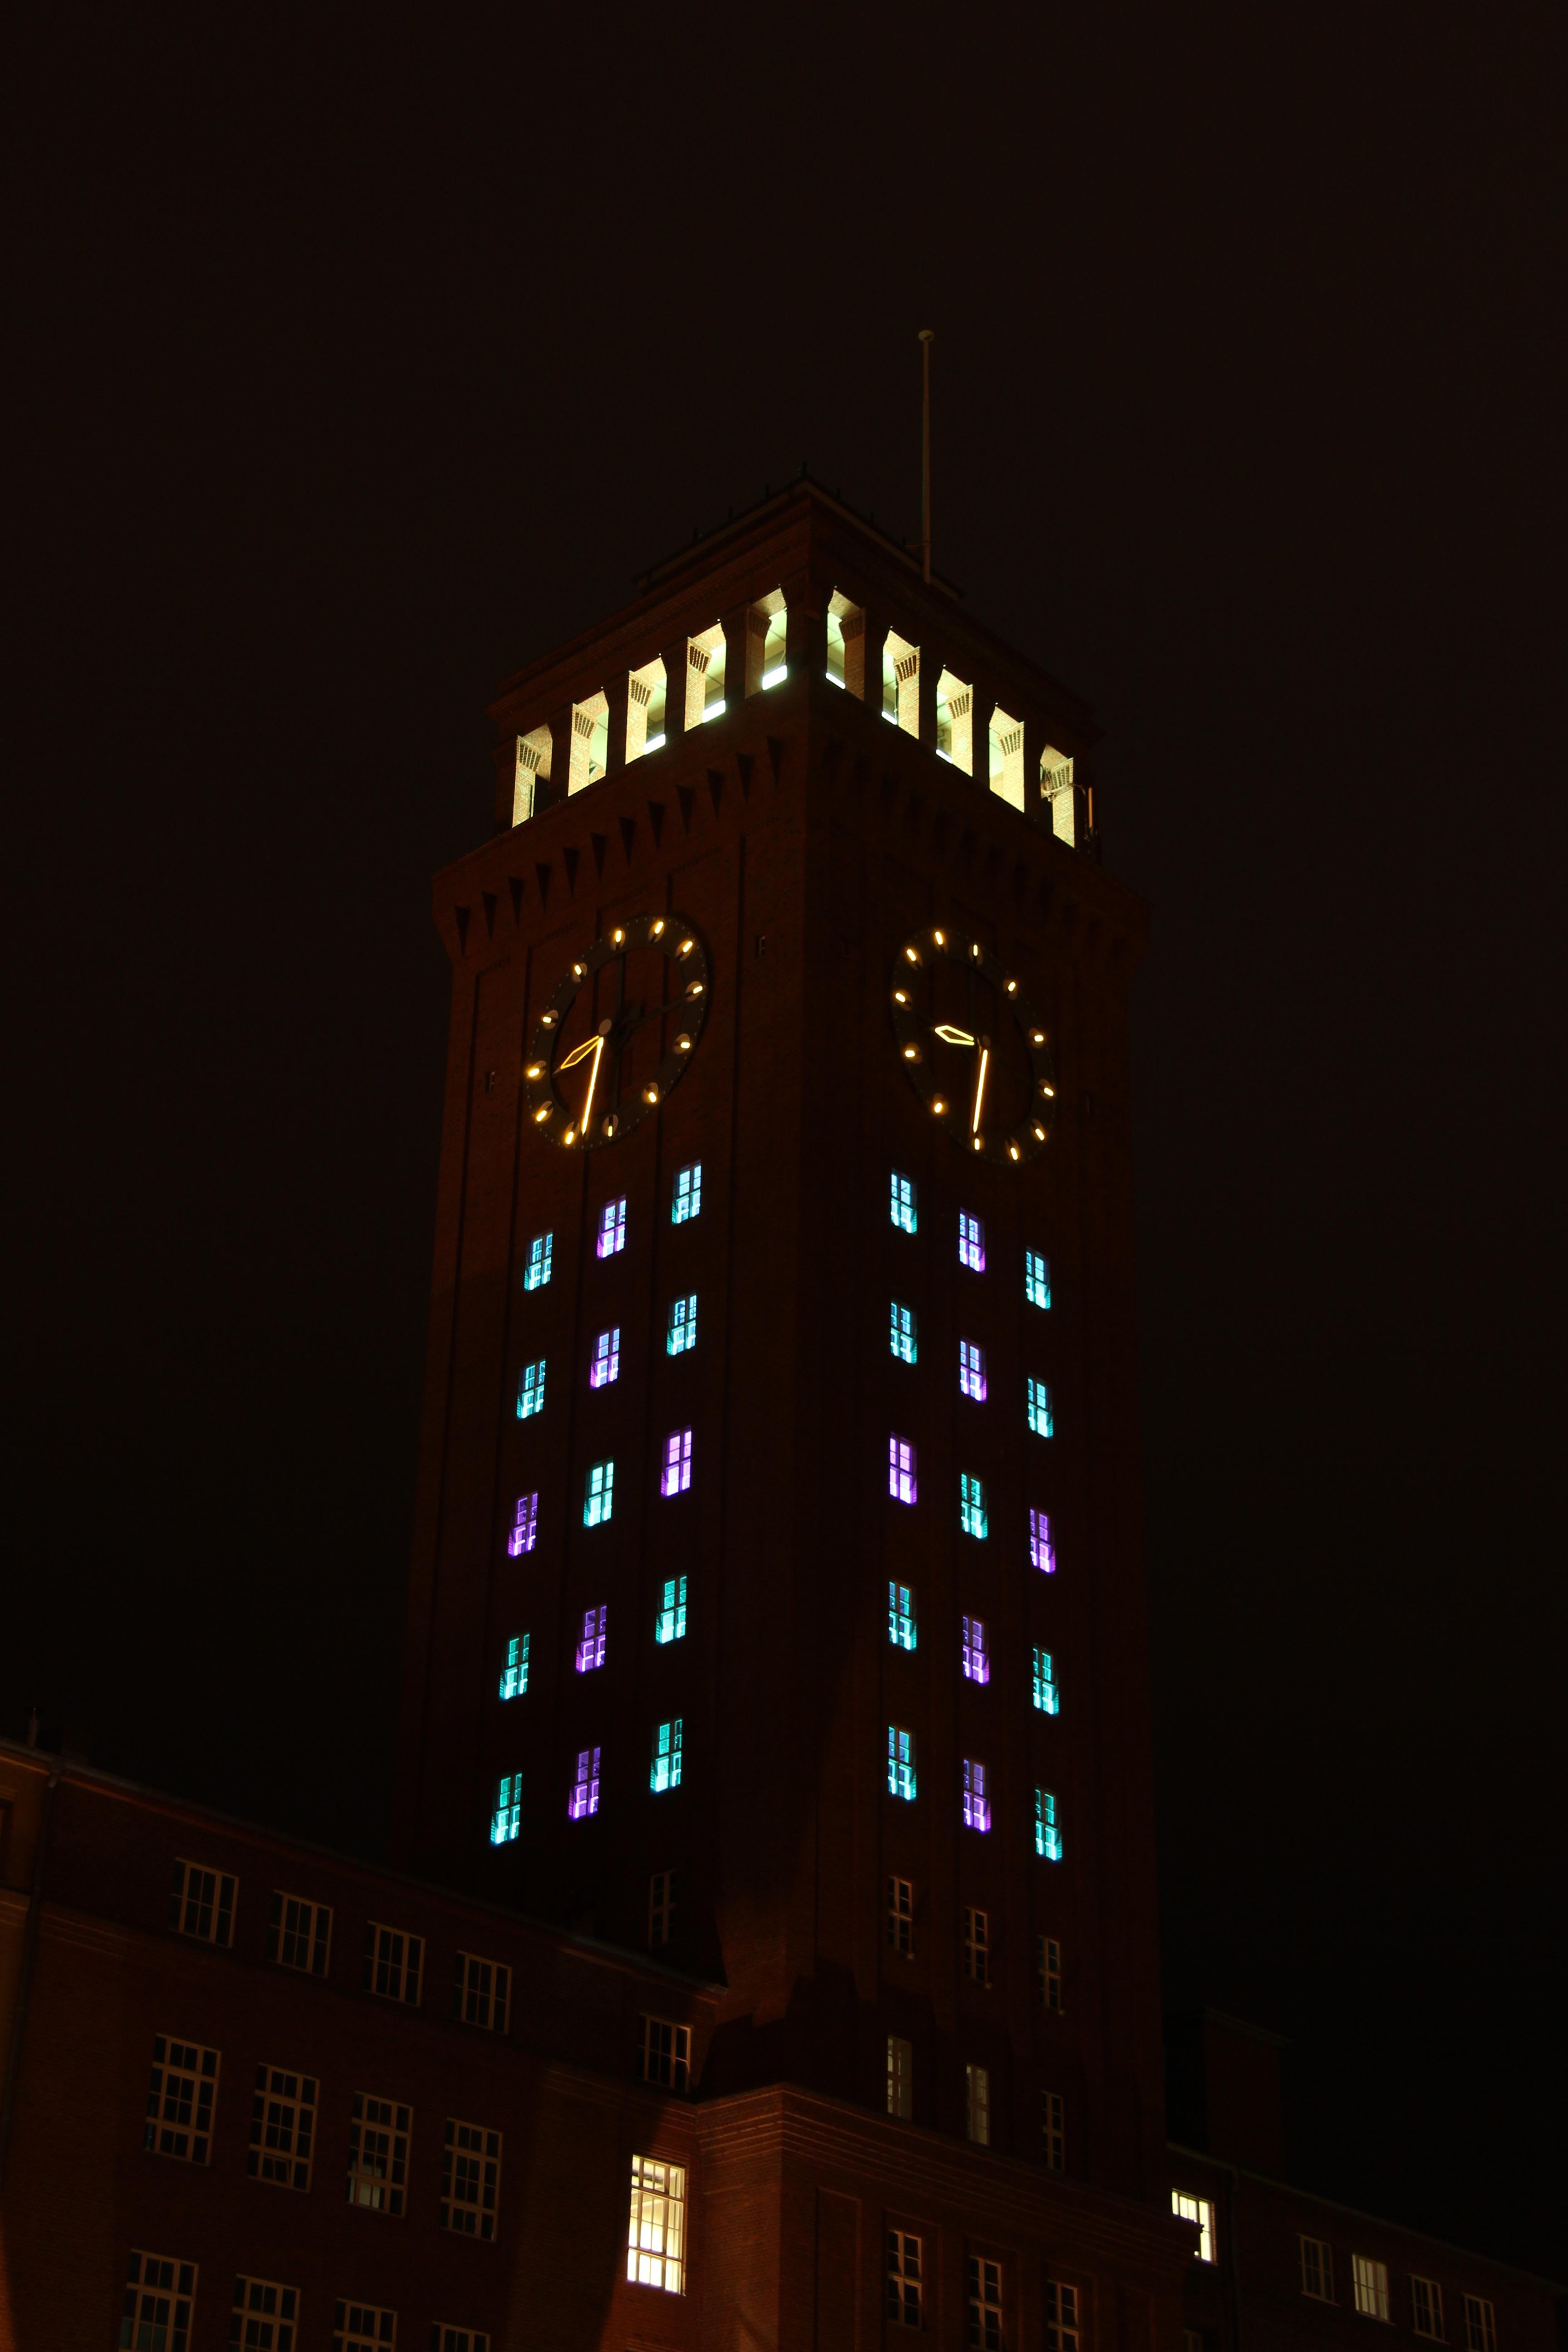 A light instillation in the Siemens AG clock tower at Technopark during the Festival of Lights in Berlin